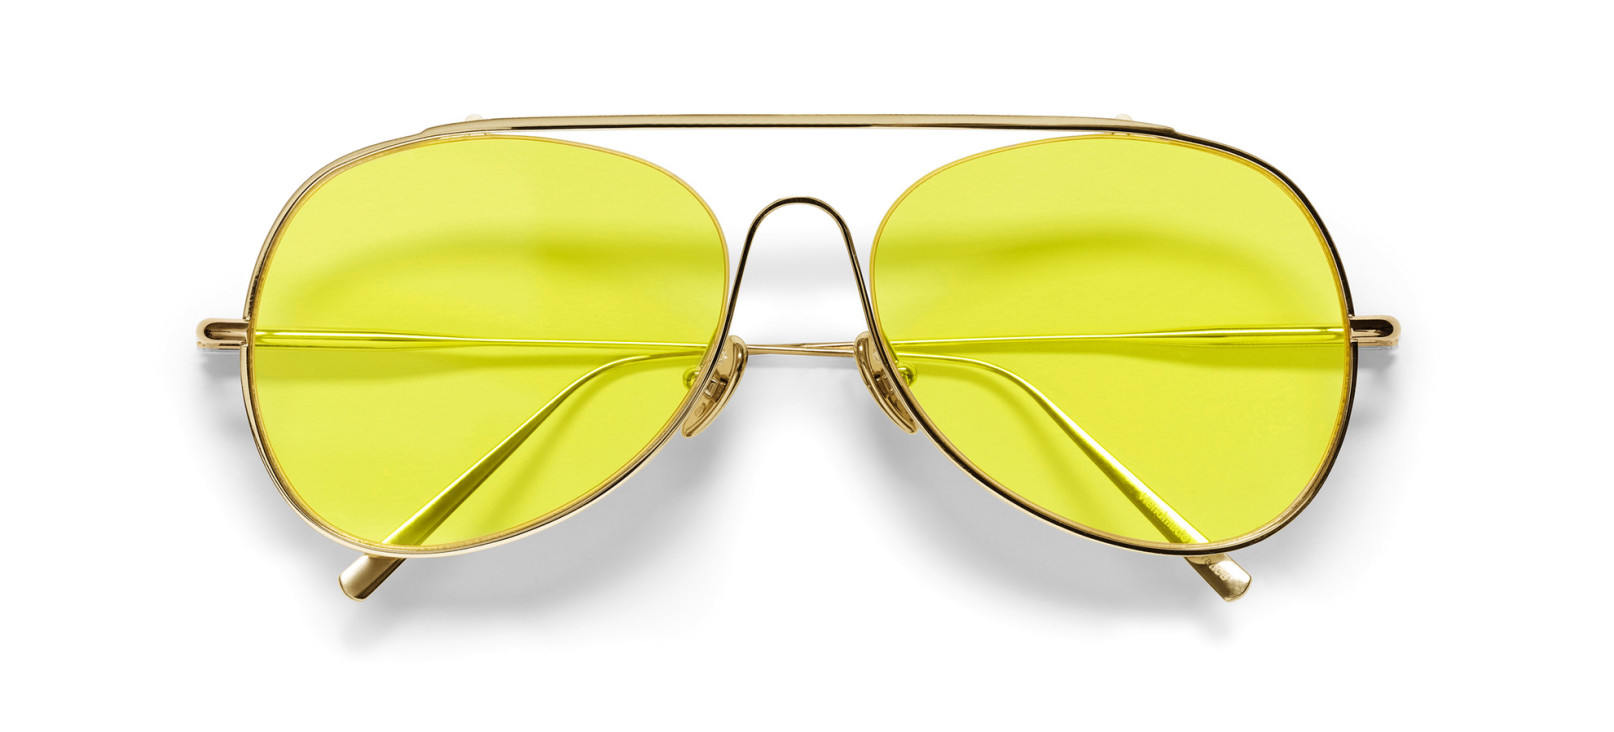 7302db1696d6 How to wear sunglasses with yellow glass